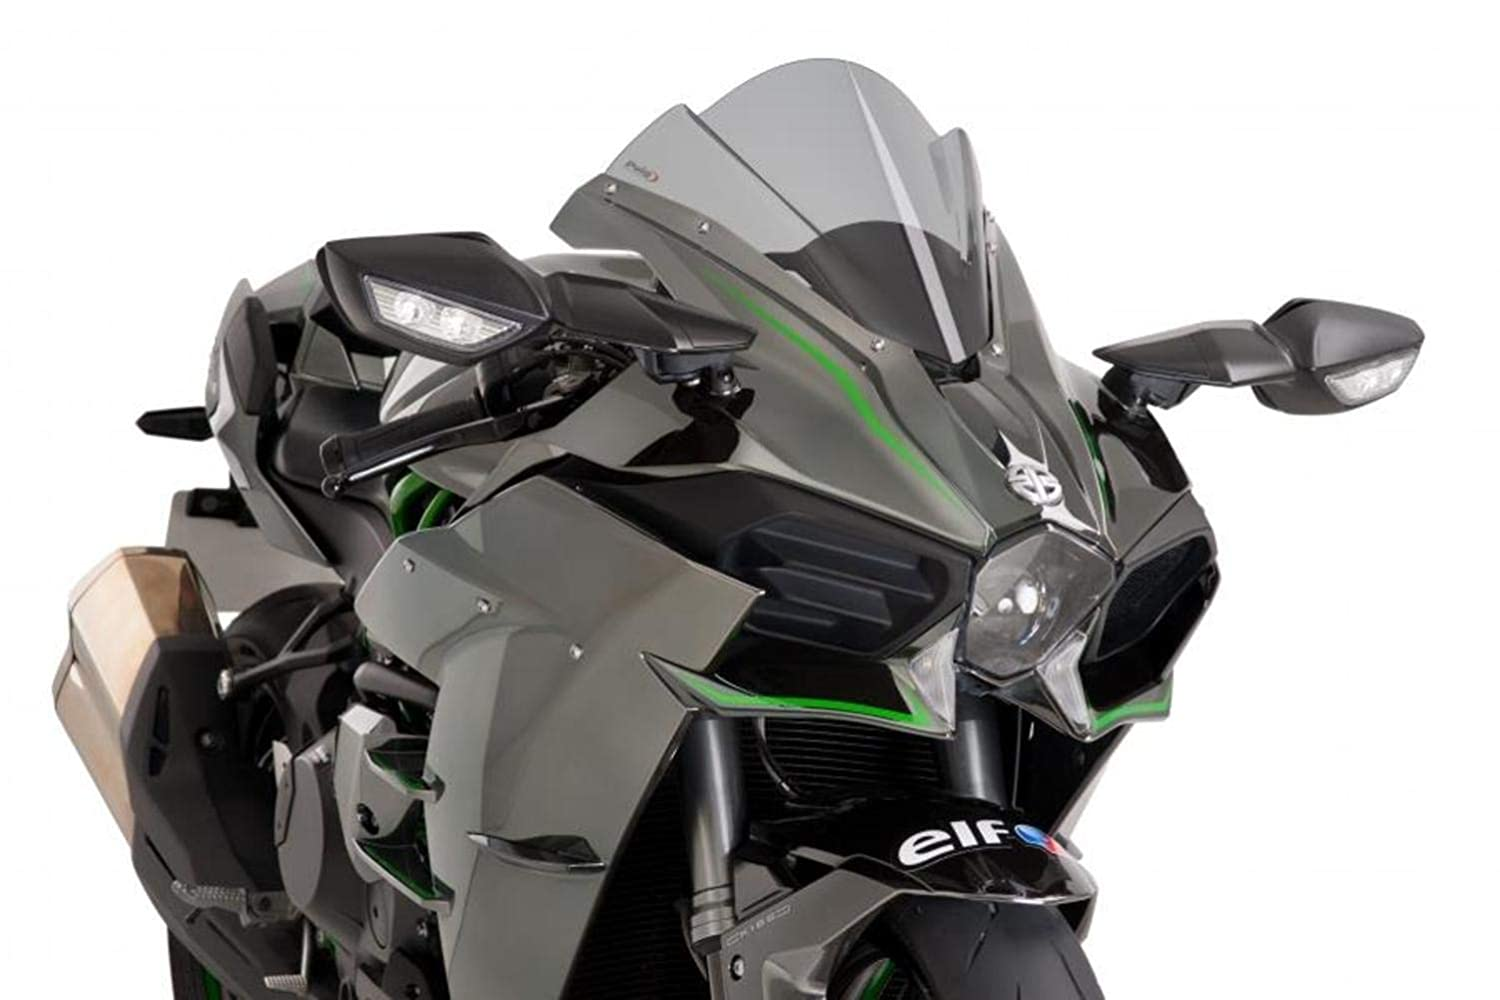 Amazon.com: 15-19 KAWASAKI NINJA-H2: Puig Z Racing ...